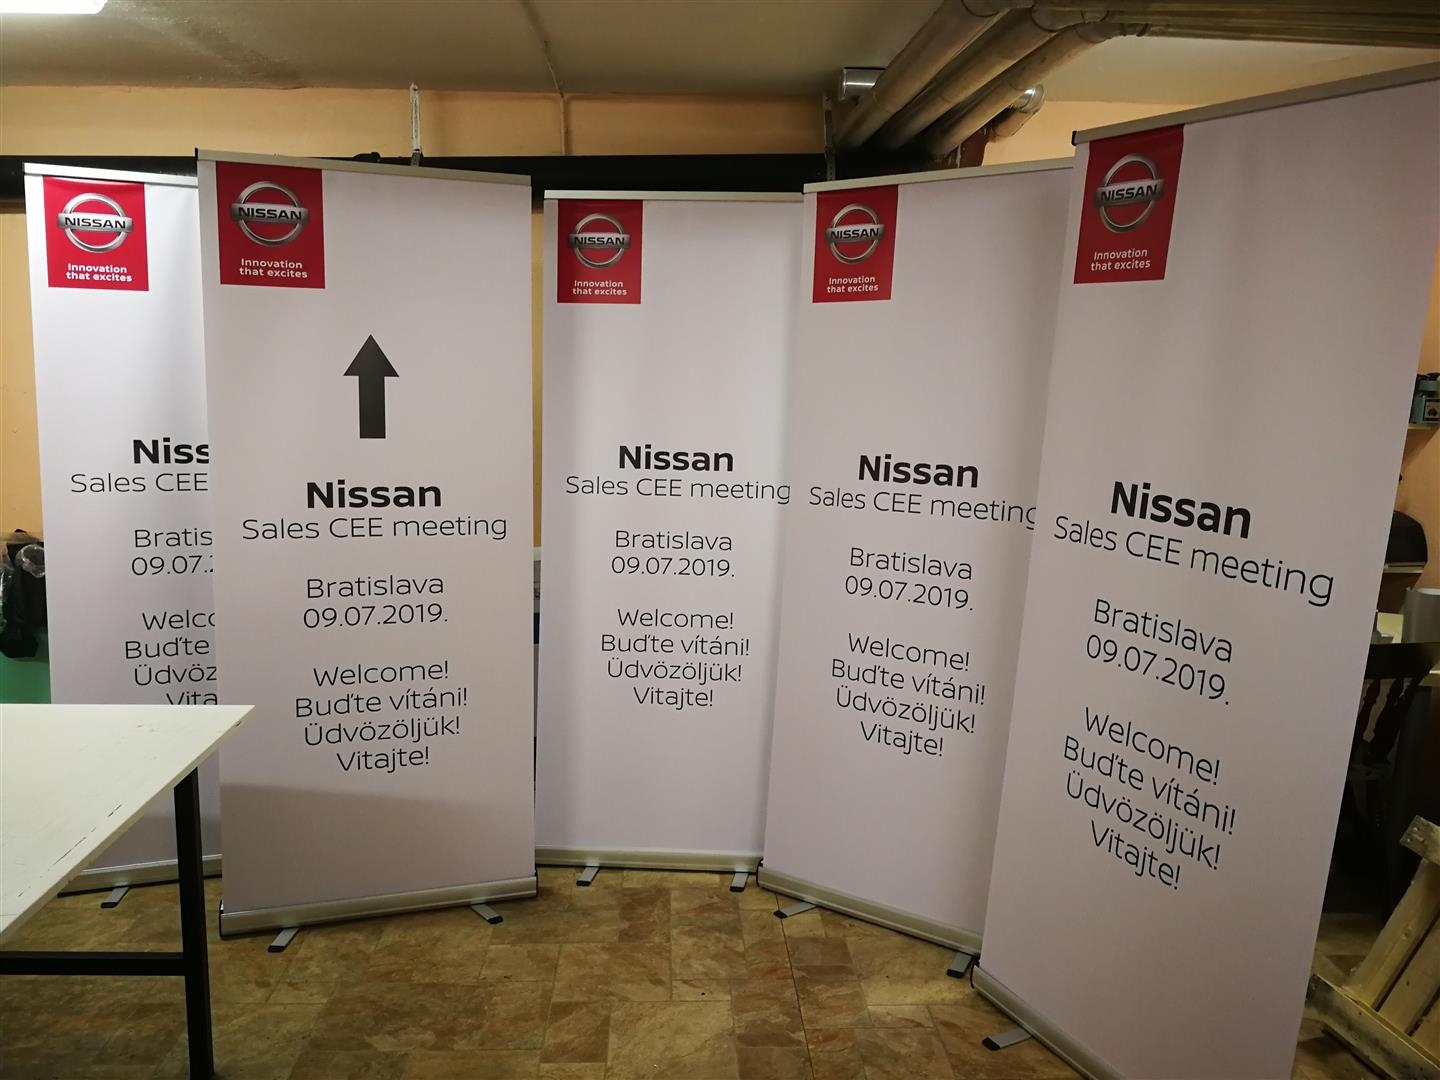 Roll up - Nissan